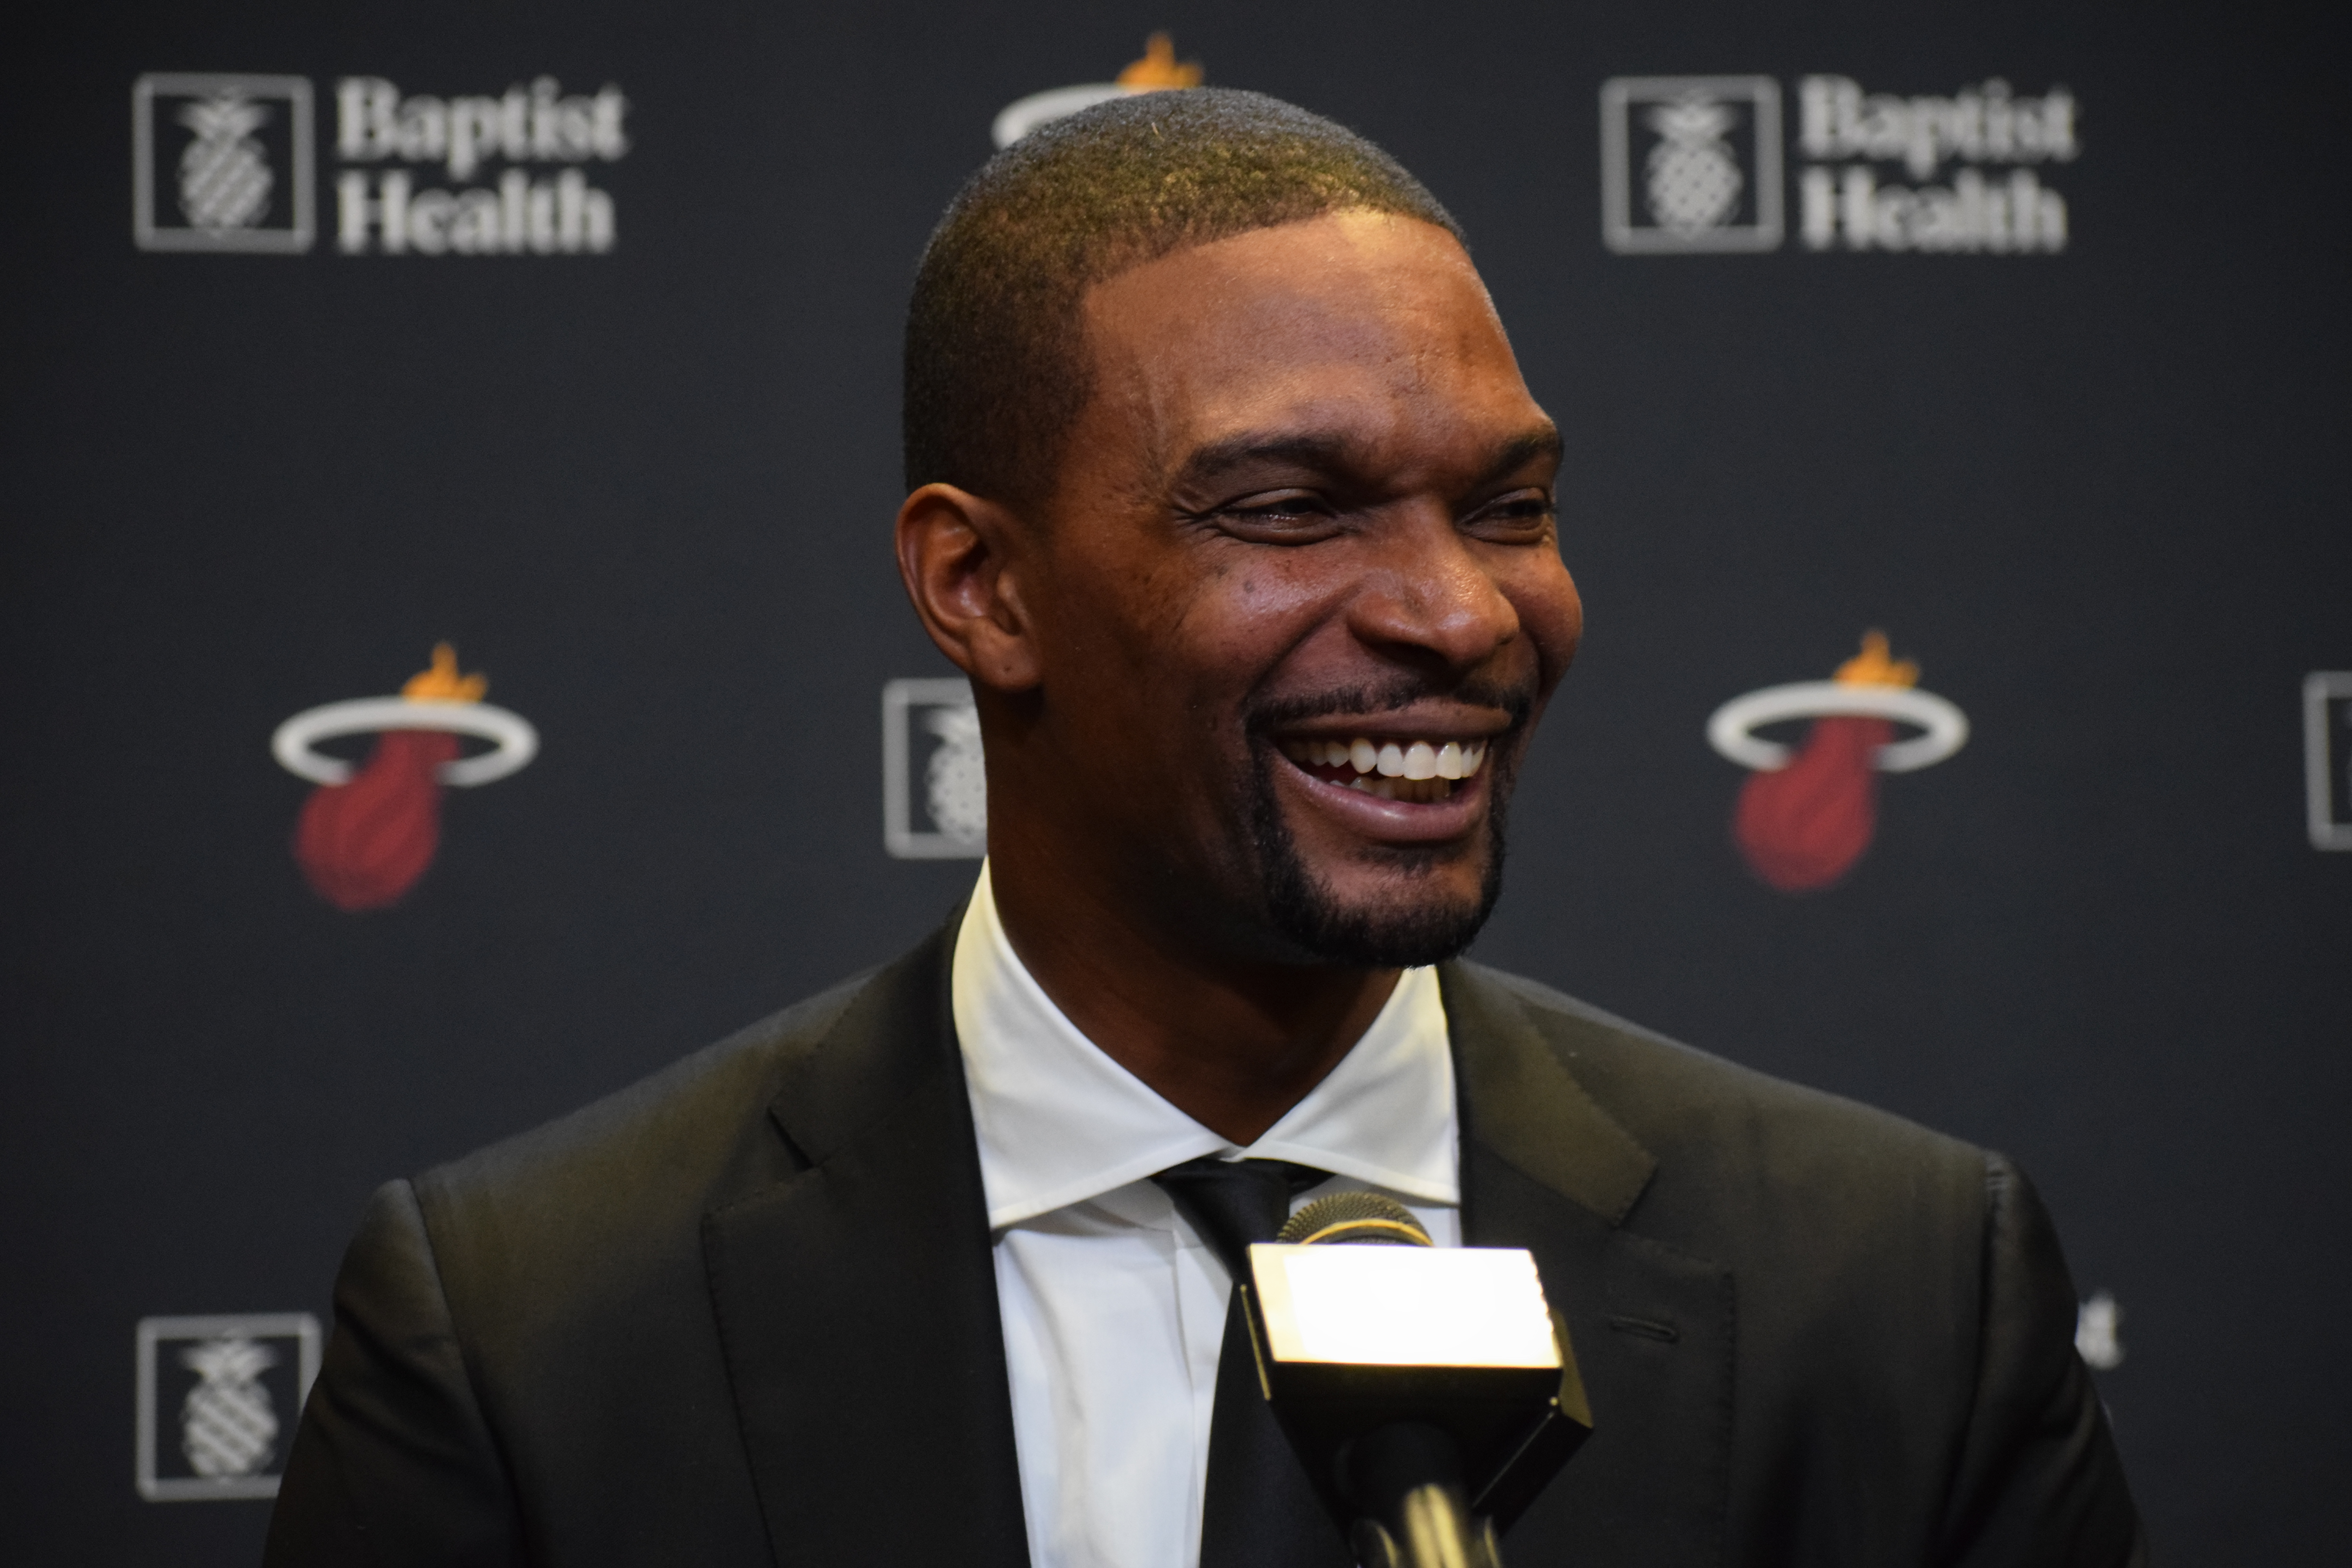 Chris Bosh NOT a finalist for Hall of Fame